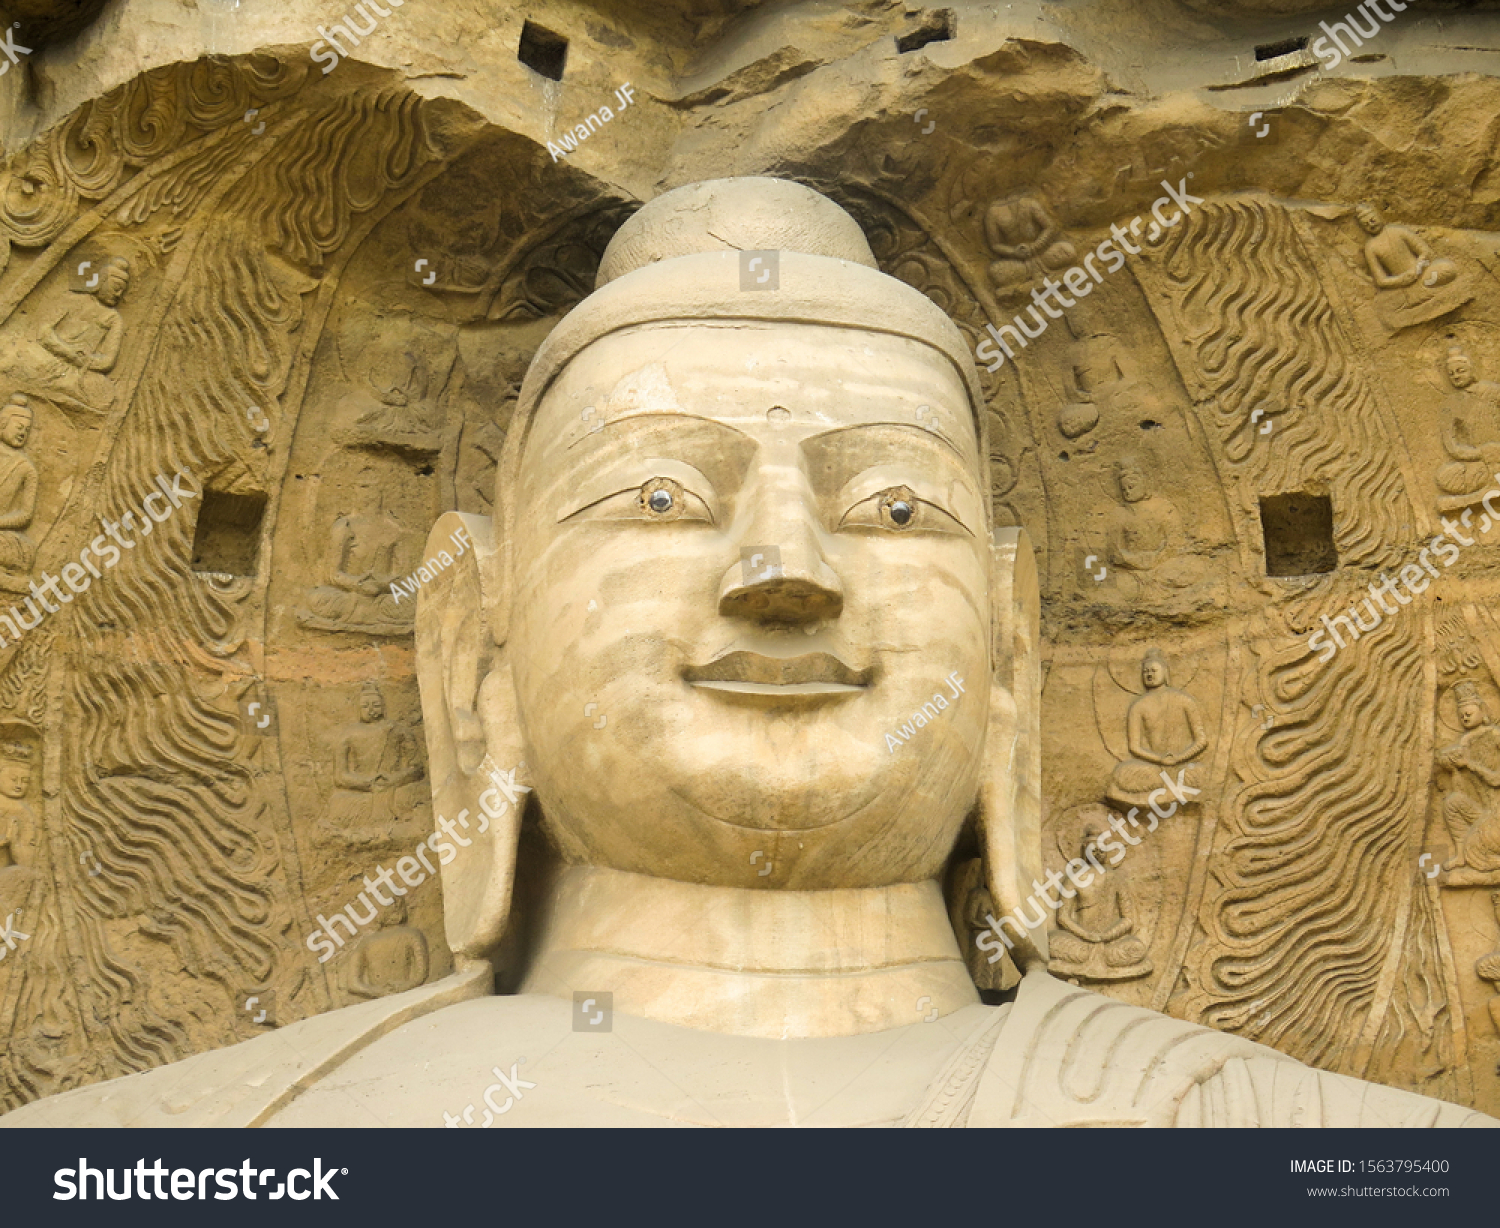 stock-photo-giant-buddha-sculture-in-yun